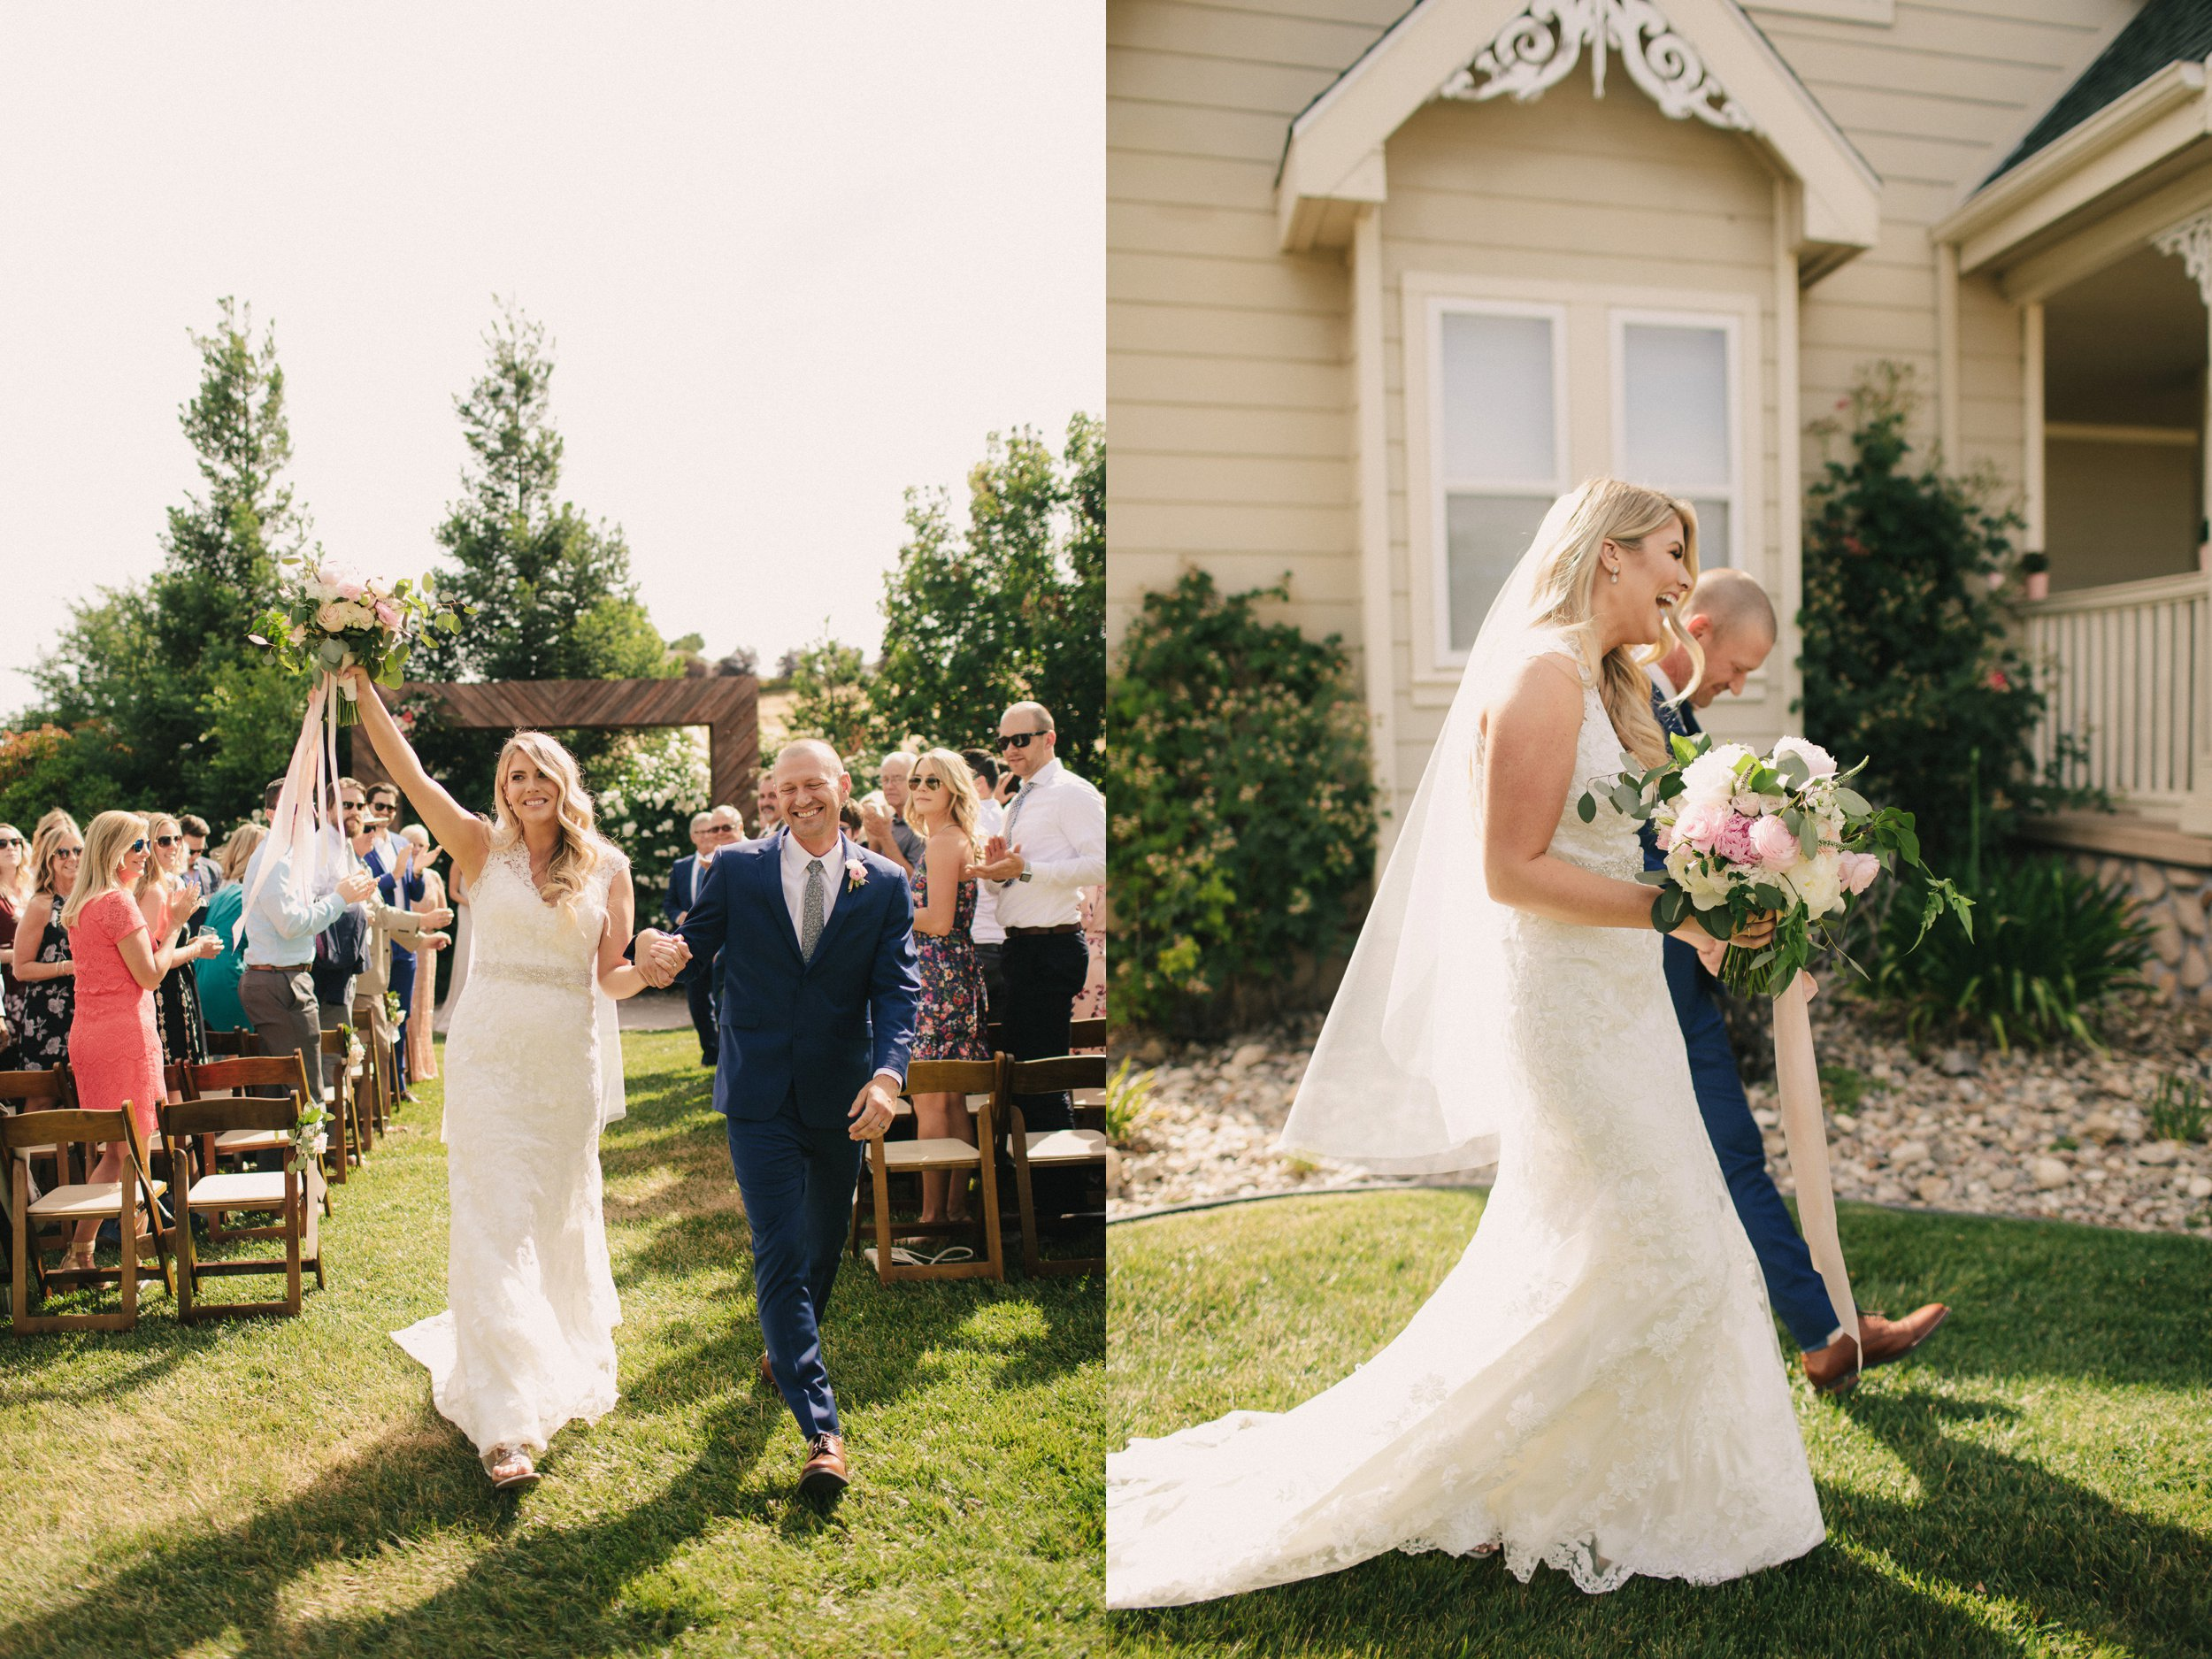 CaliforniaWedding|LindenCloverPhotography_0060.jpg